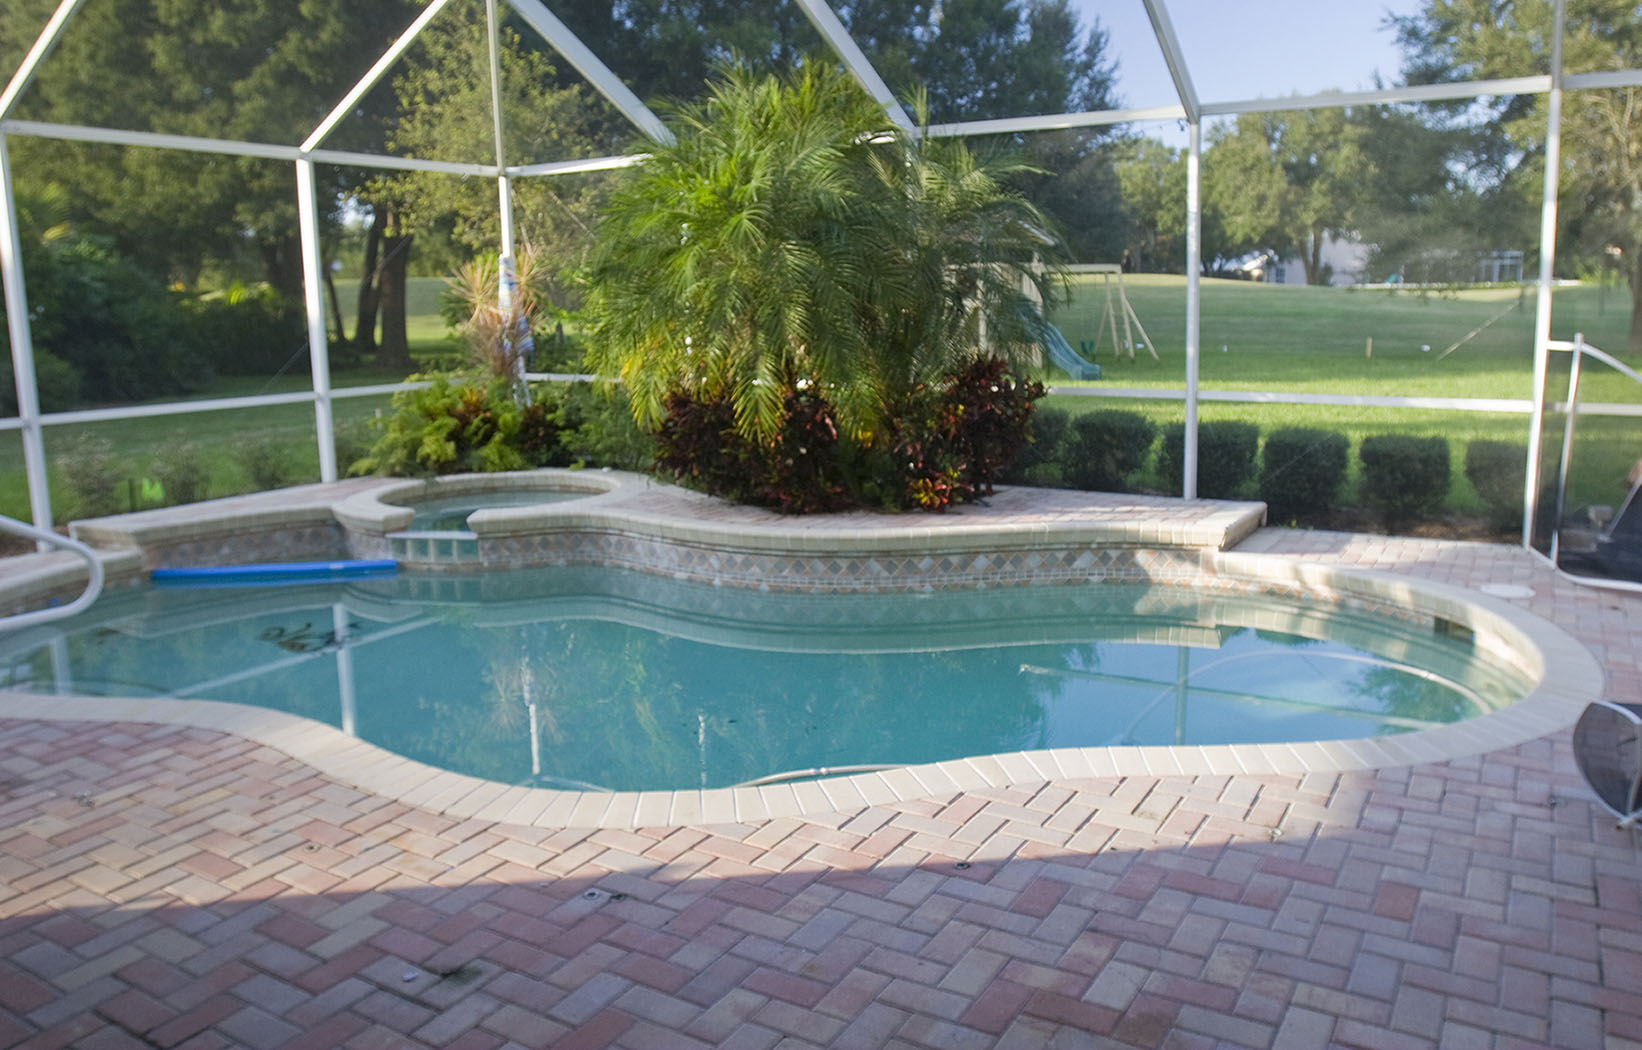 Lagoon Pool Remodel to Tropical Resort with Slide, Grotto ...